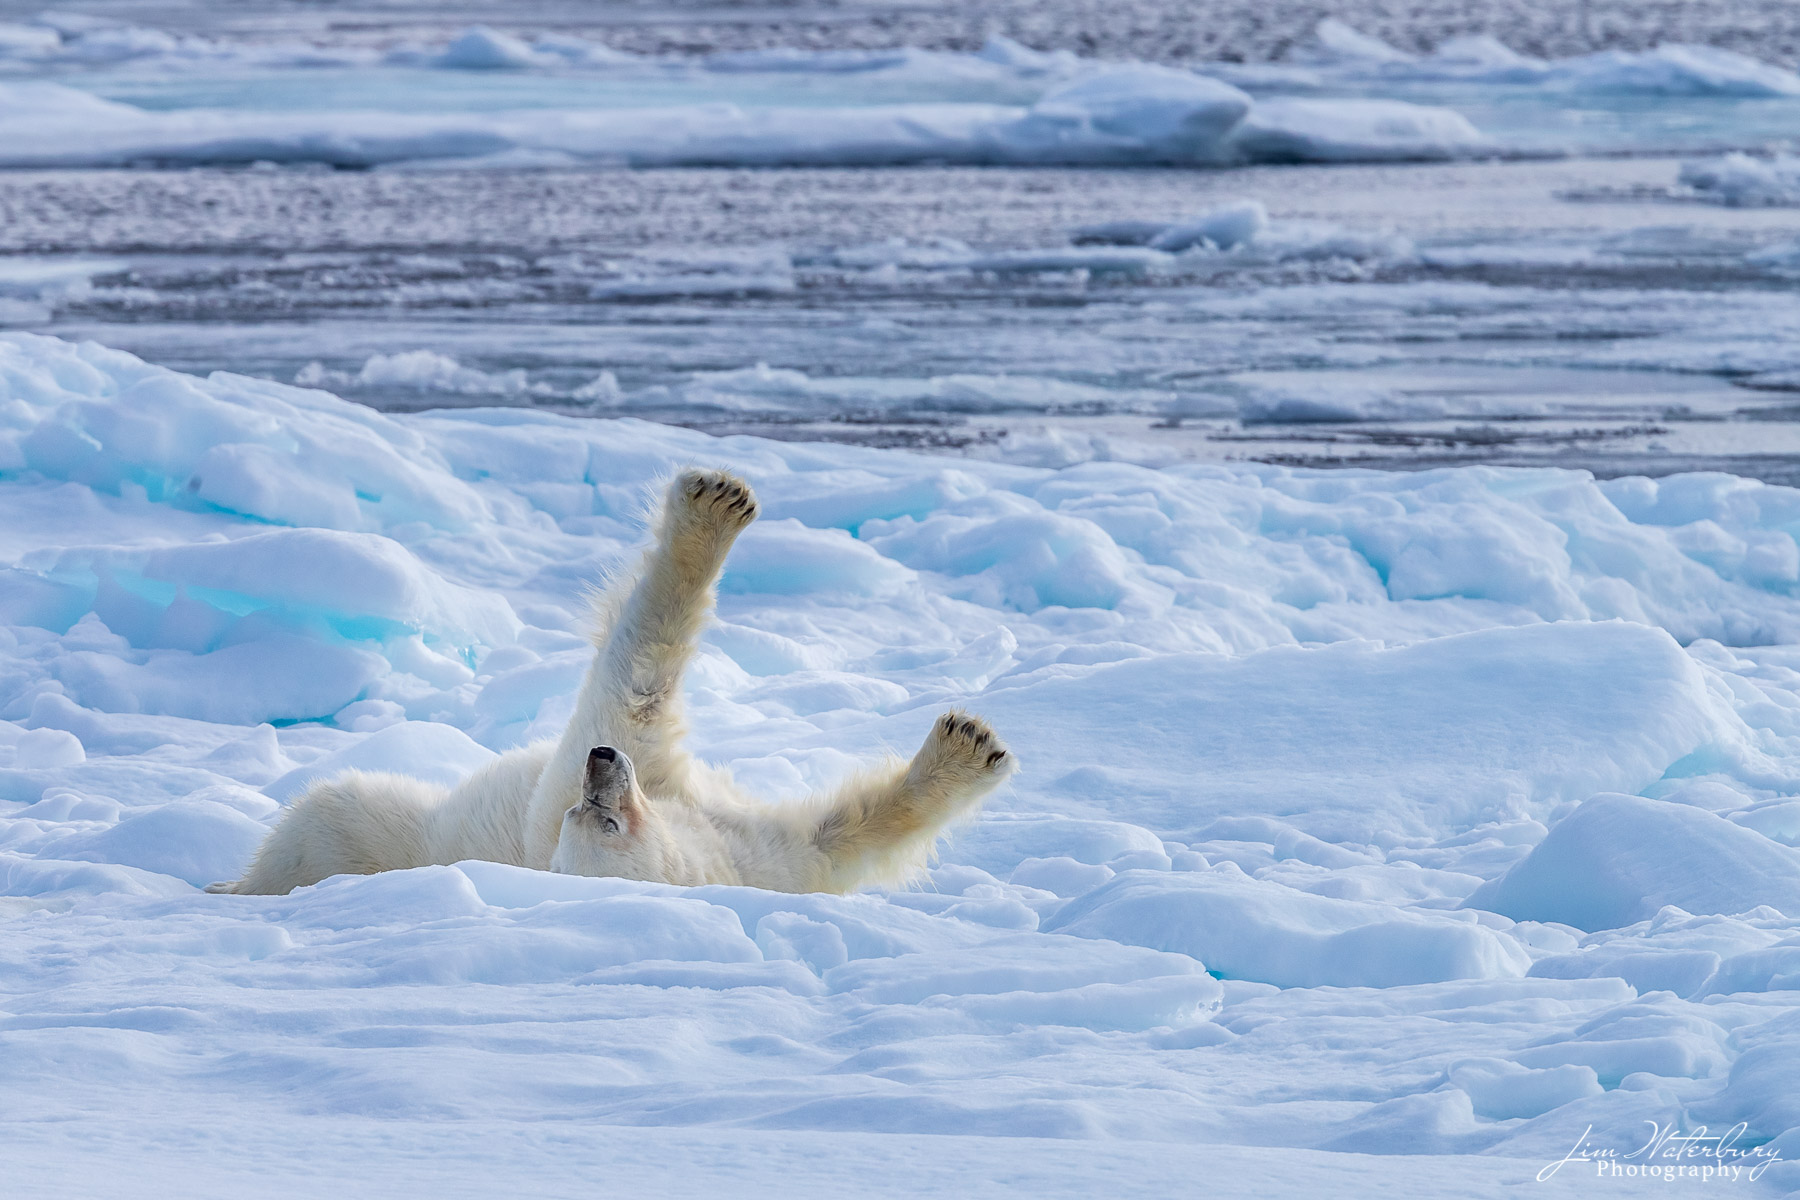 A polar bear, after a successful hunt and a swim in the icy waters of the Arctic Ocean, stretches on the pack ice north of Svalbard...